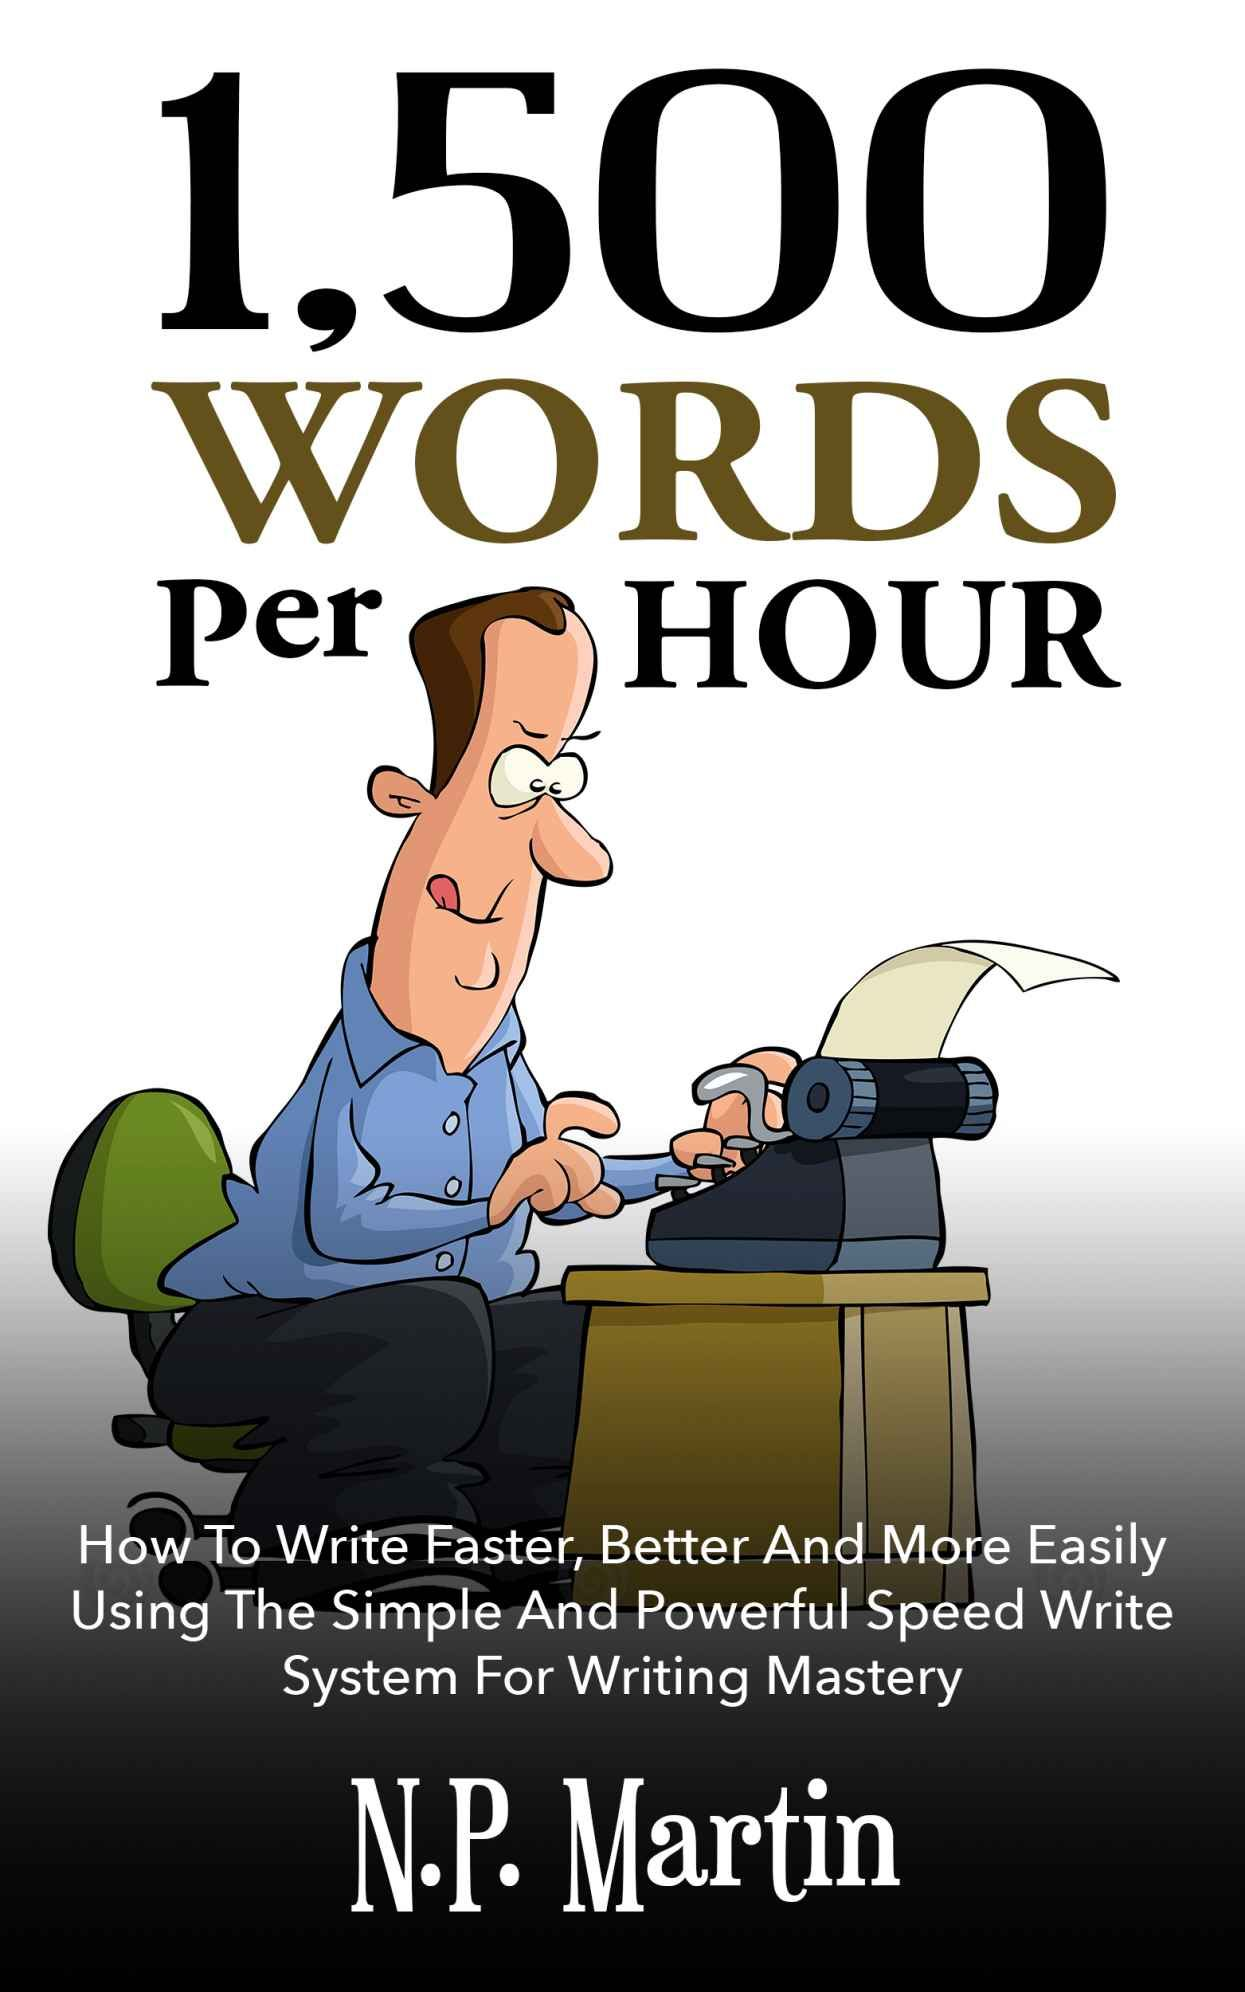 1500 Words Per Hour How To Write Faster Better And More Easily Using The Simple And Powerful Speed Write Sys Speed Writing Writing Systems Nonfiction Writing